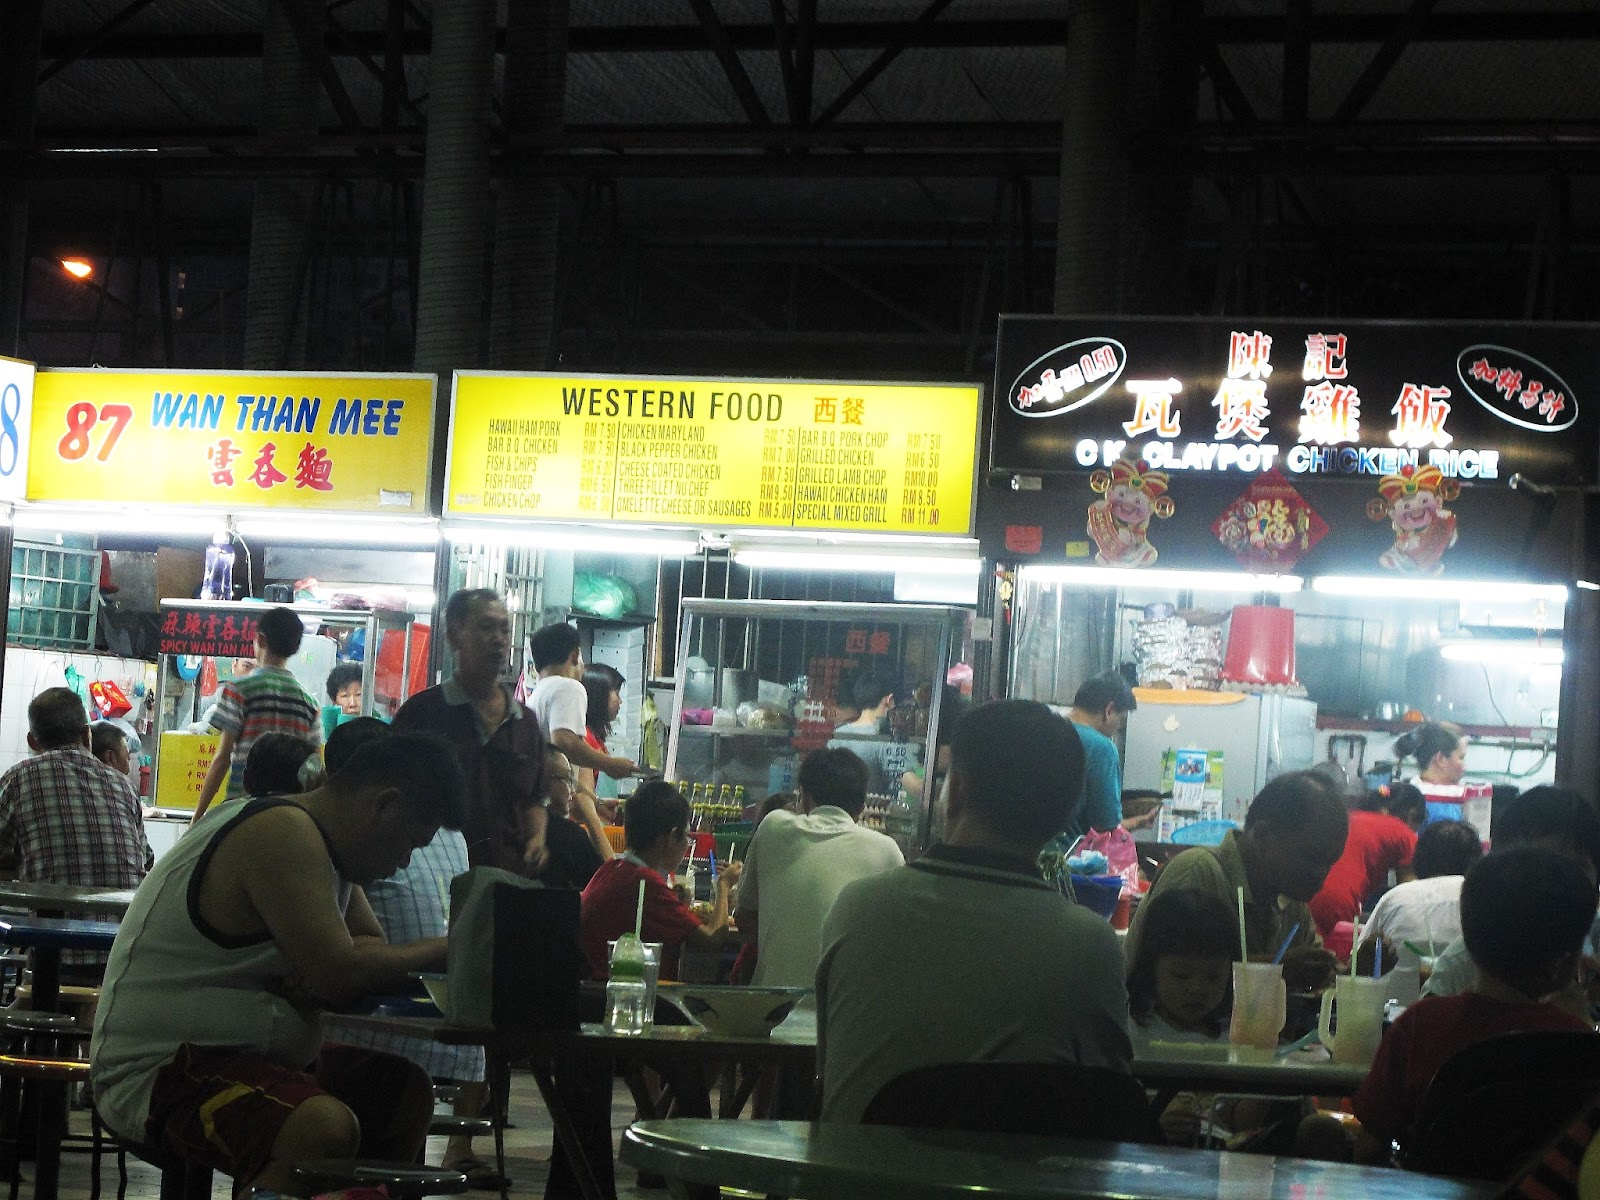 Food court business plan